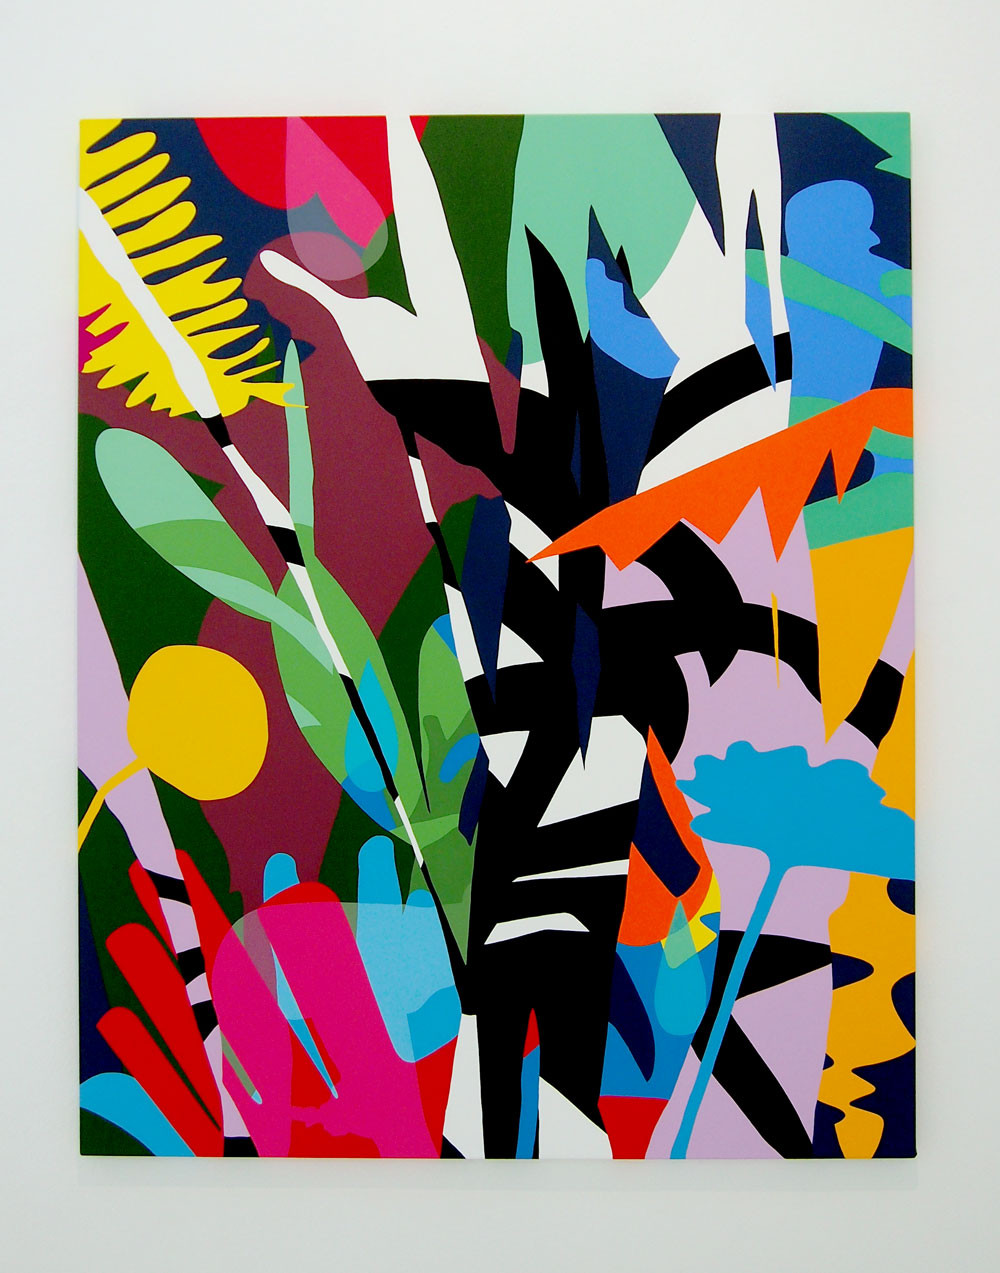 An abstracted painting on rectangular canvas of colorful foliage against a white background